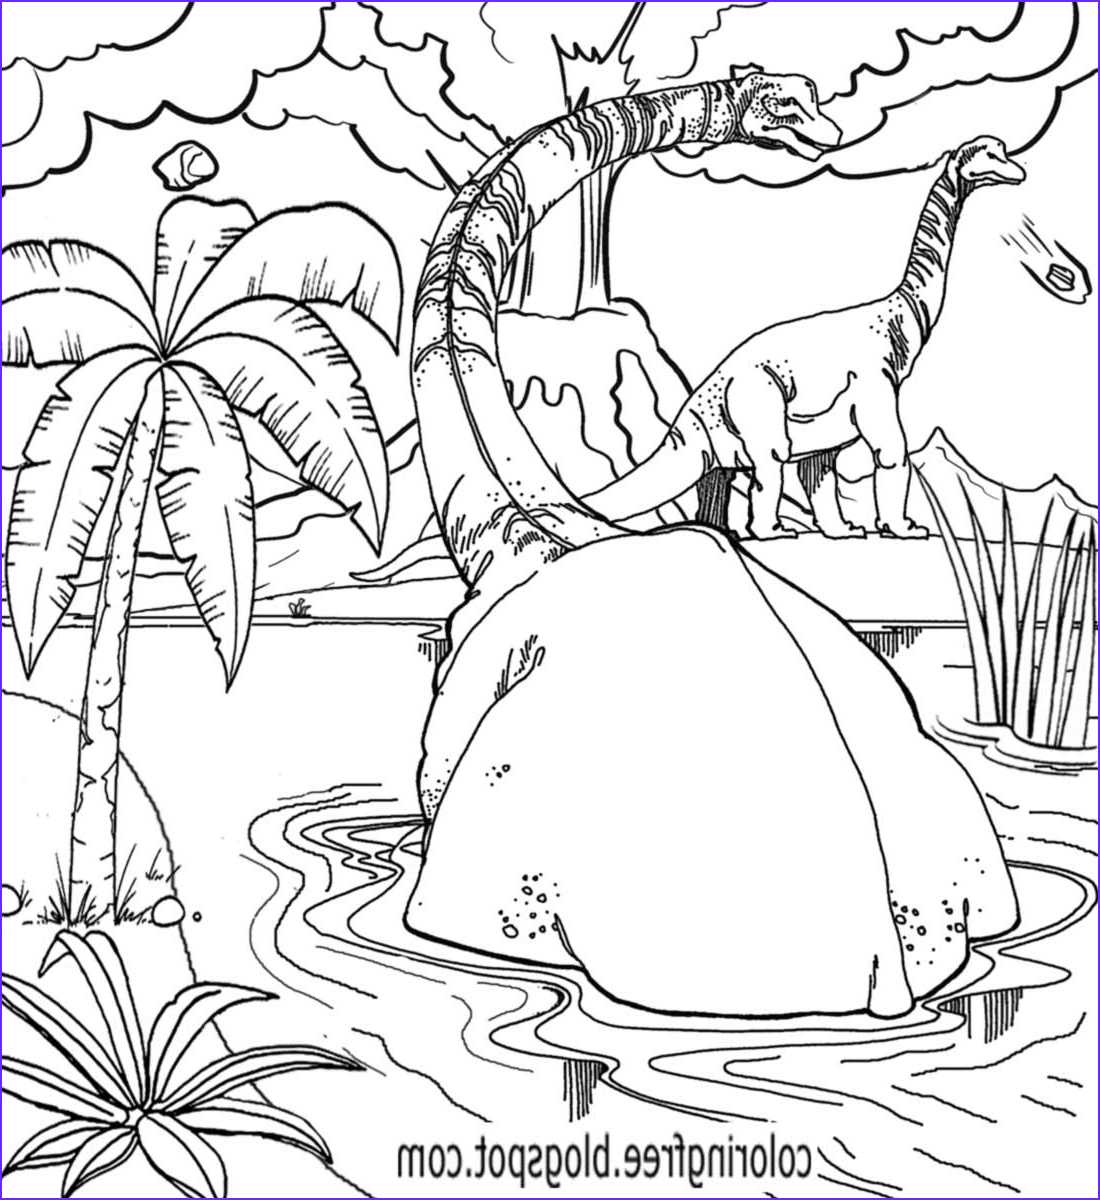 Jurassic World Coloring Pages Beautiful Photos Free Coloring Pages Printable to Color Kids